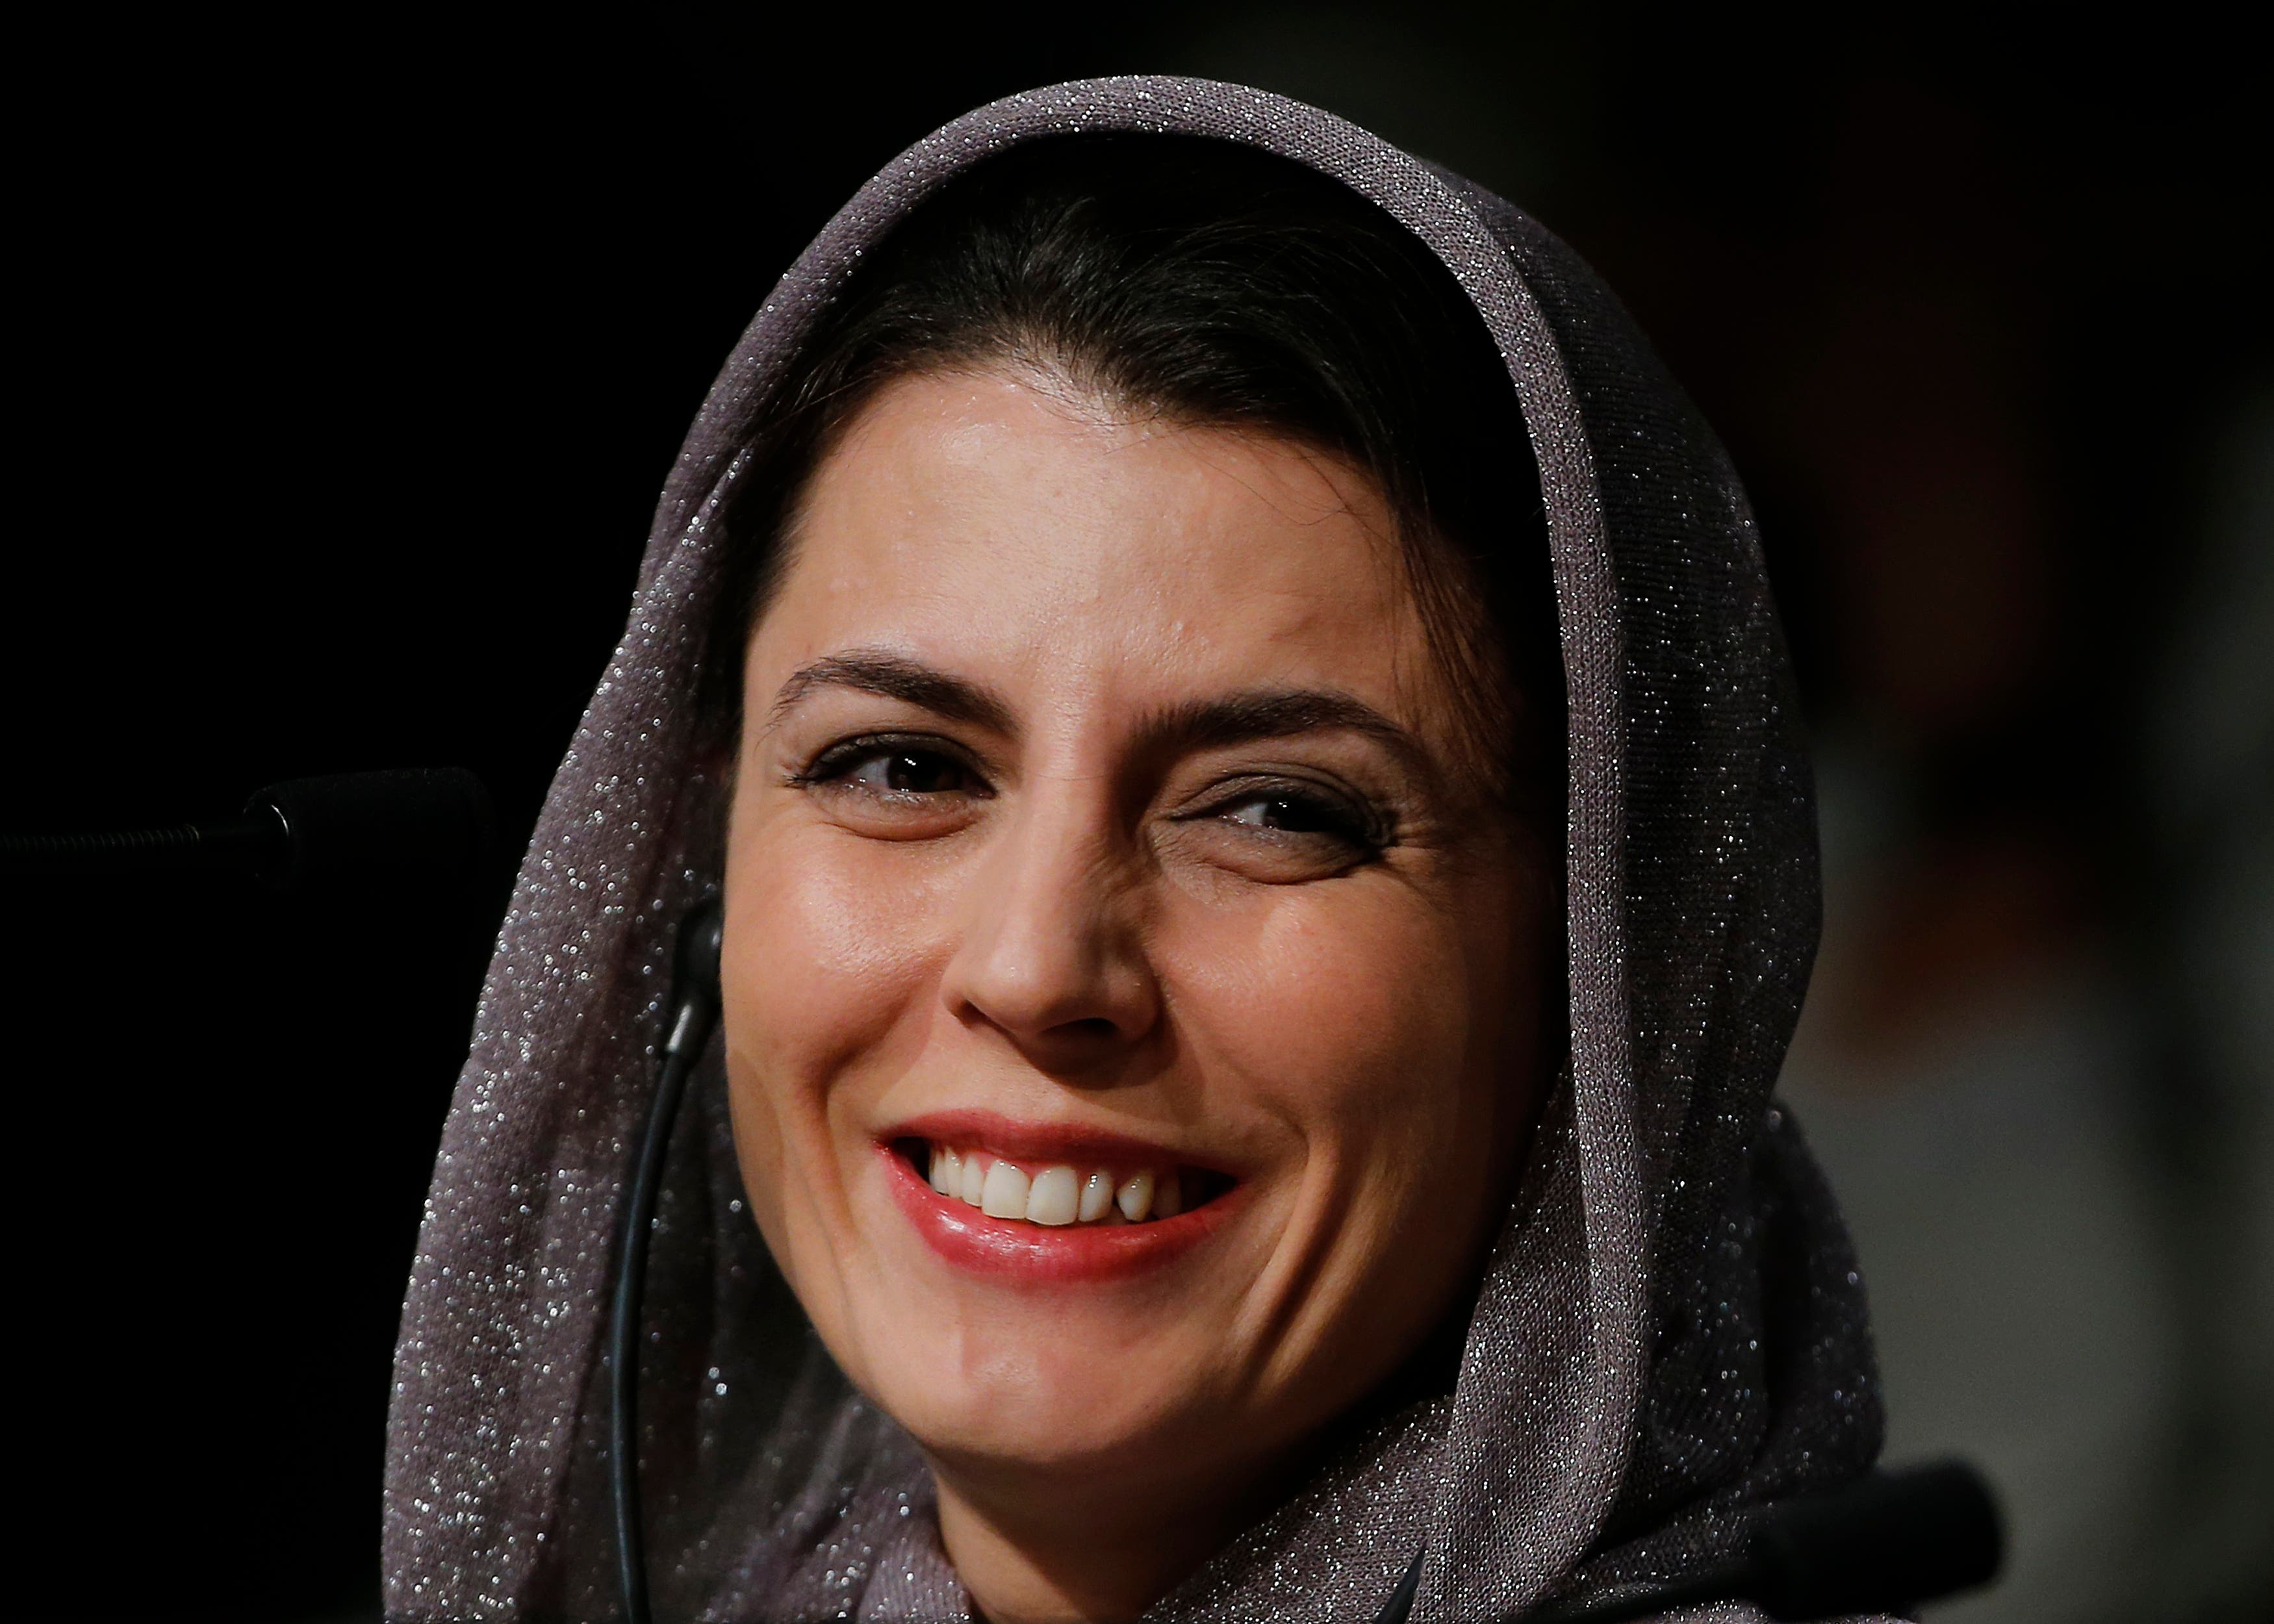 Iran's Leila Hatami caught in Cannes kiss 'scandal'